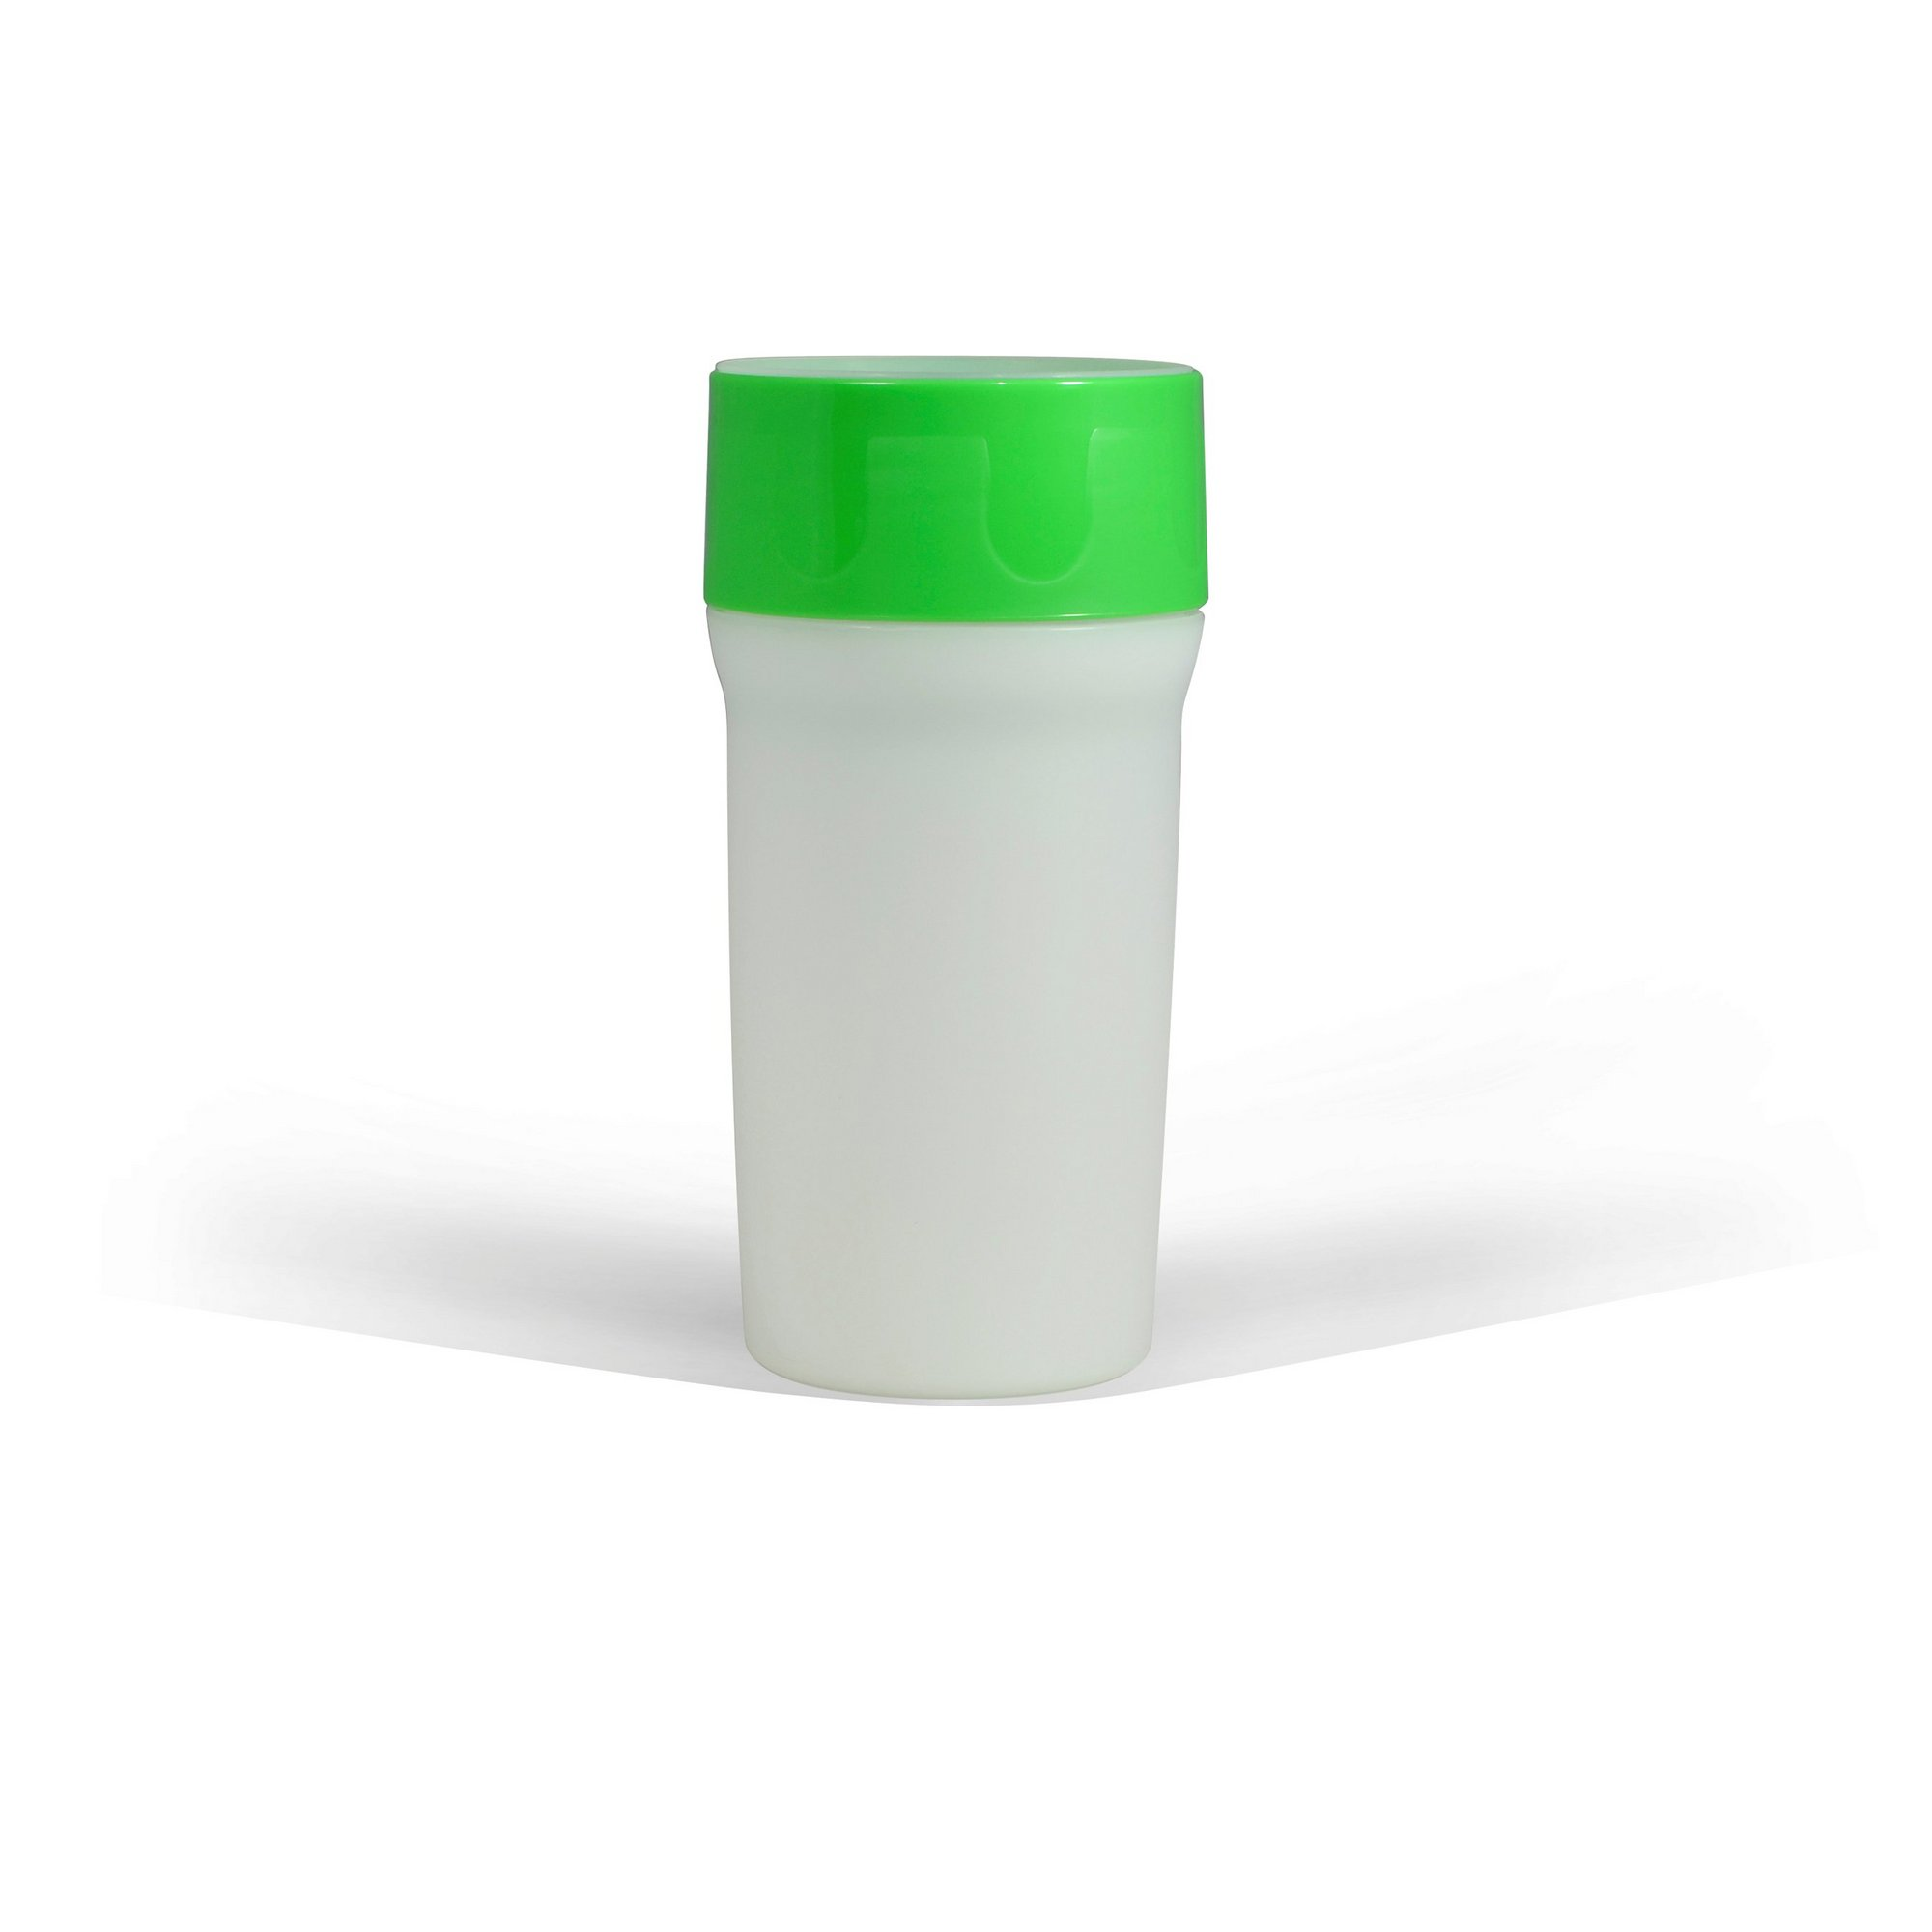 Image of LiteCup - Sippy Cup with Integrated Night Light